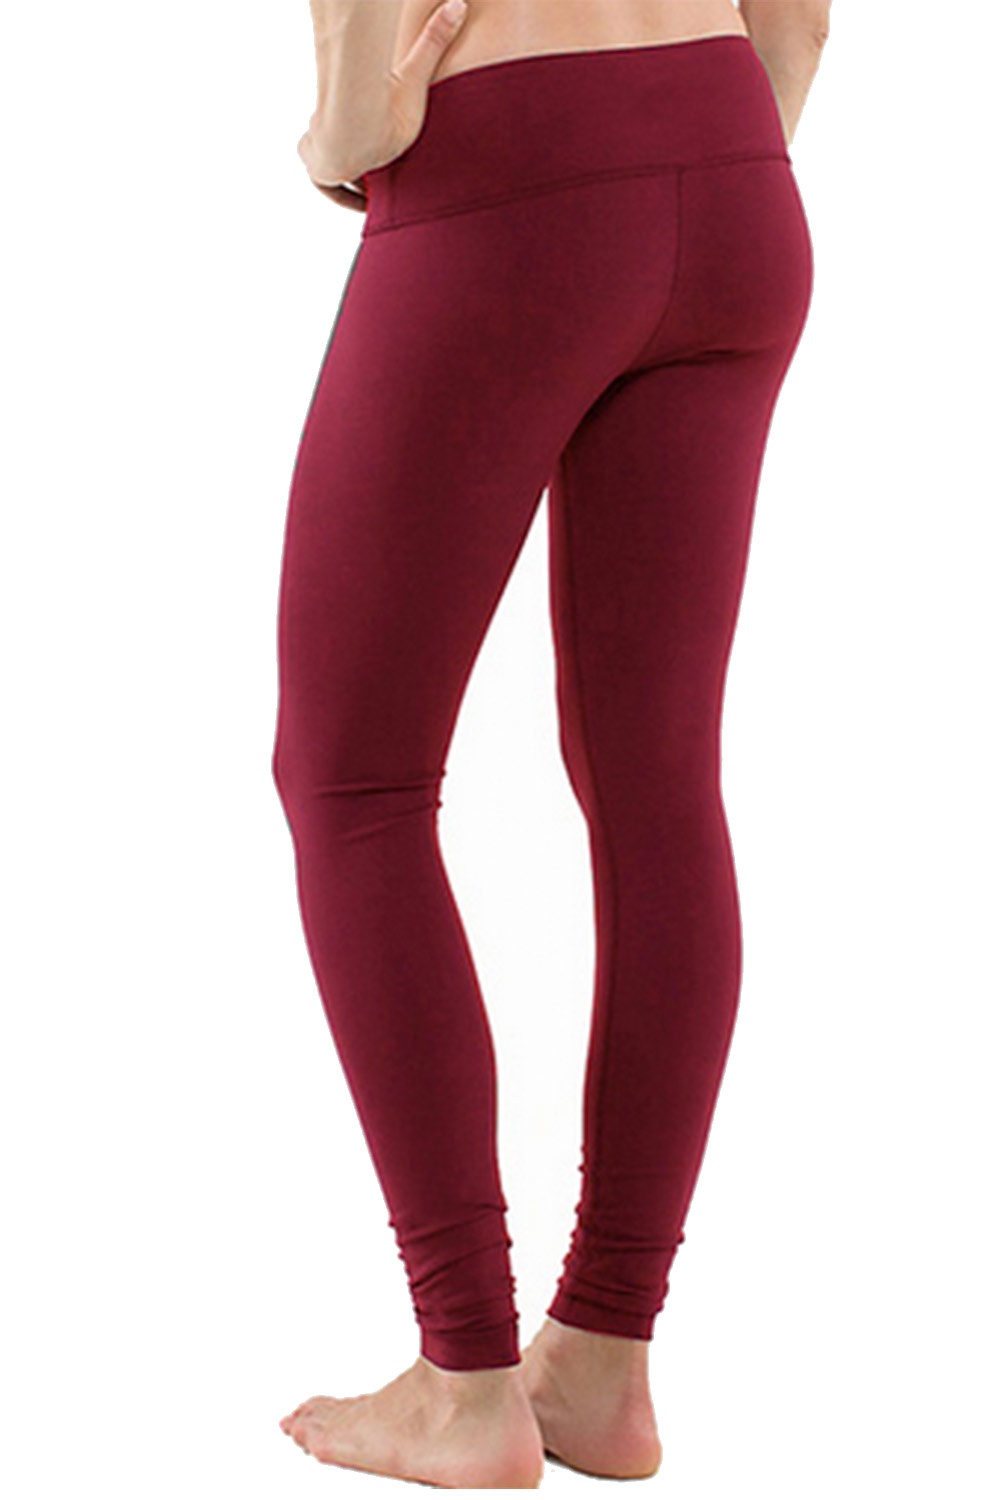 Find great deals on eBay for red jeggings. Shop with confidence.